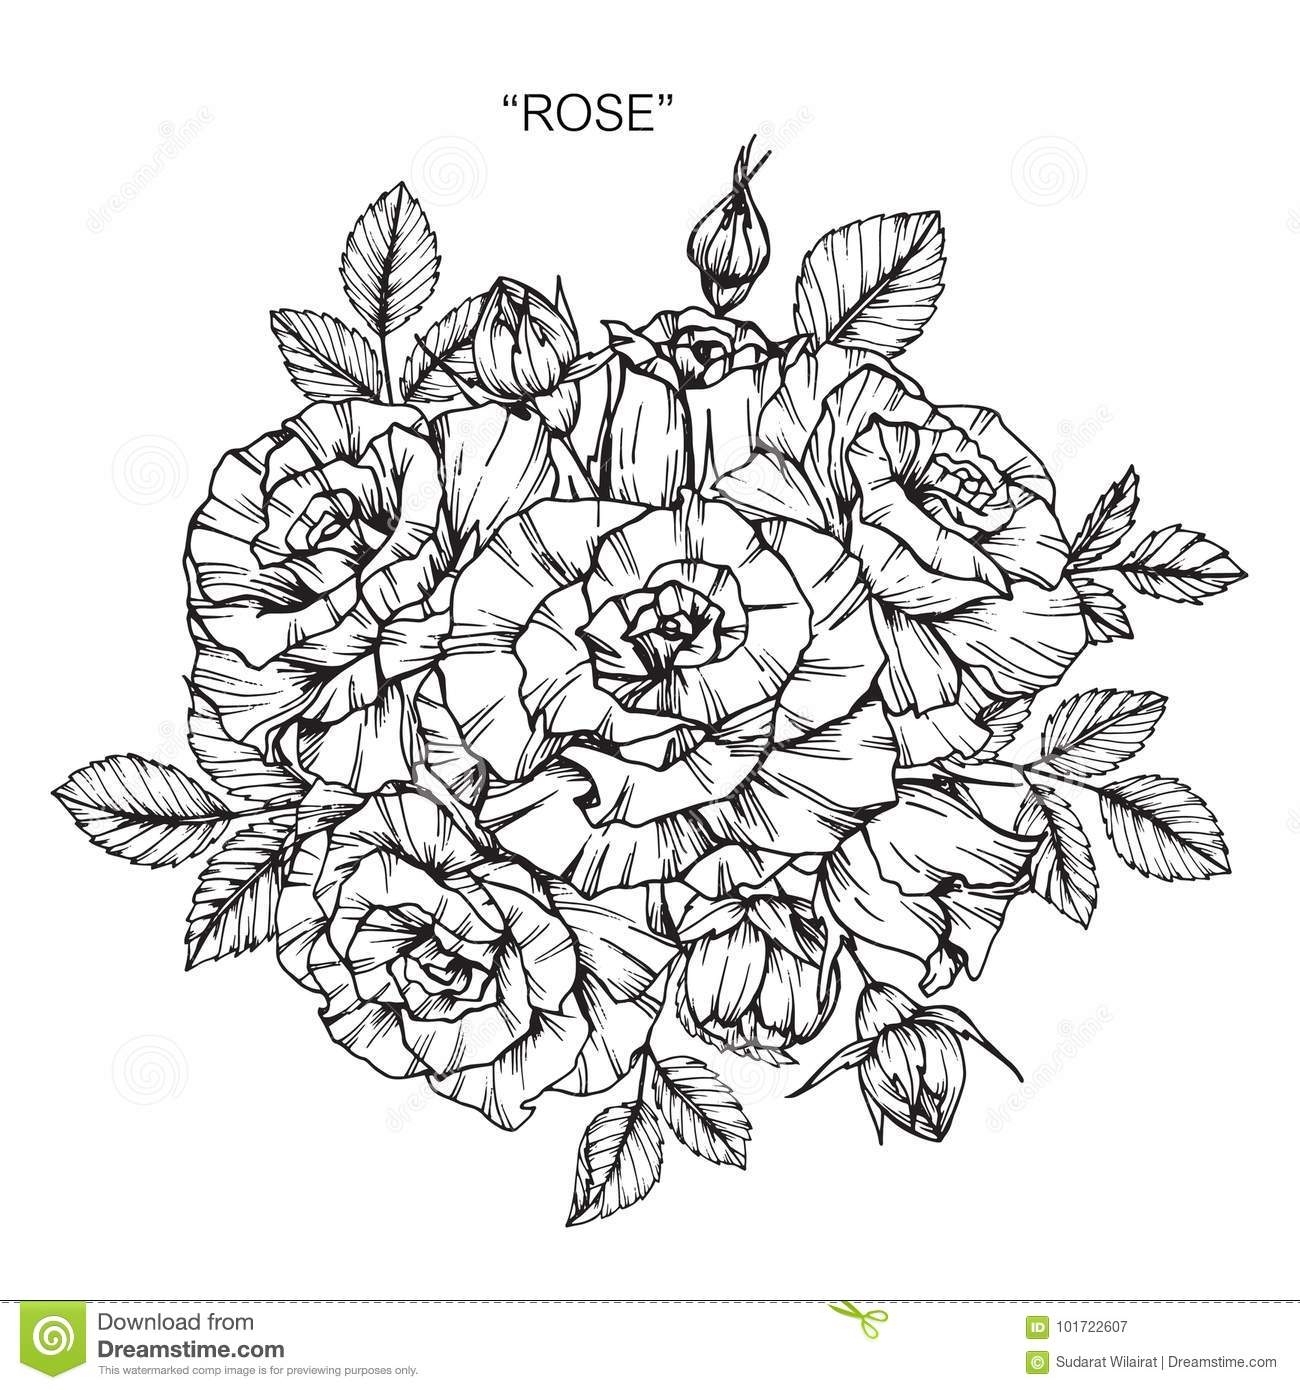 Bouquet of rose flower drawing and sketch with line art on white backgrounds